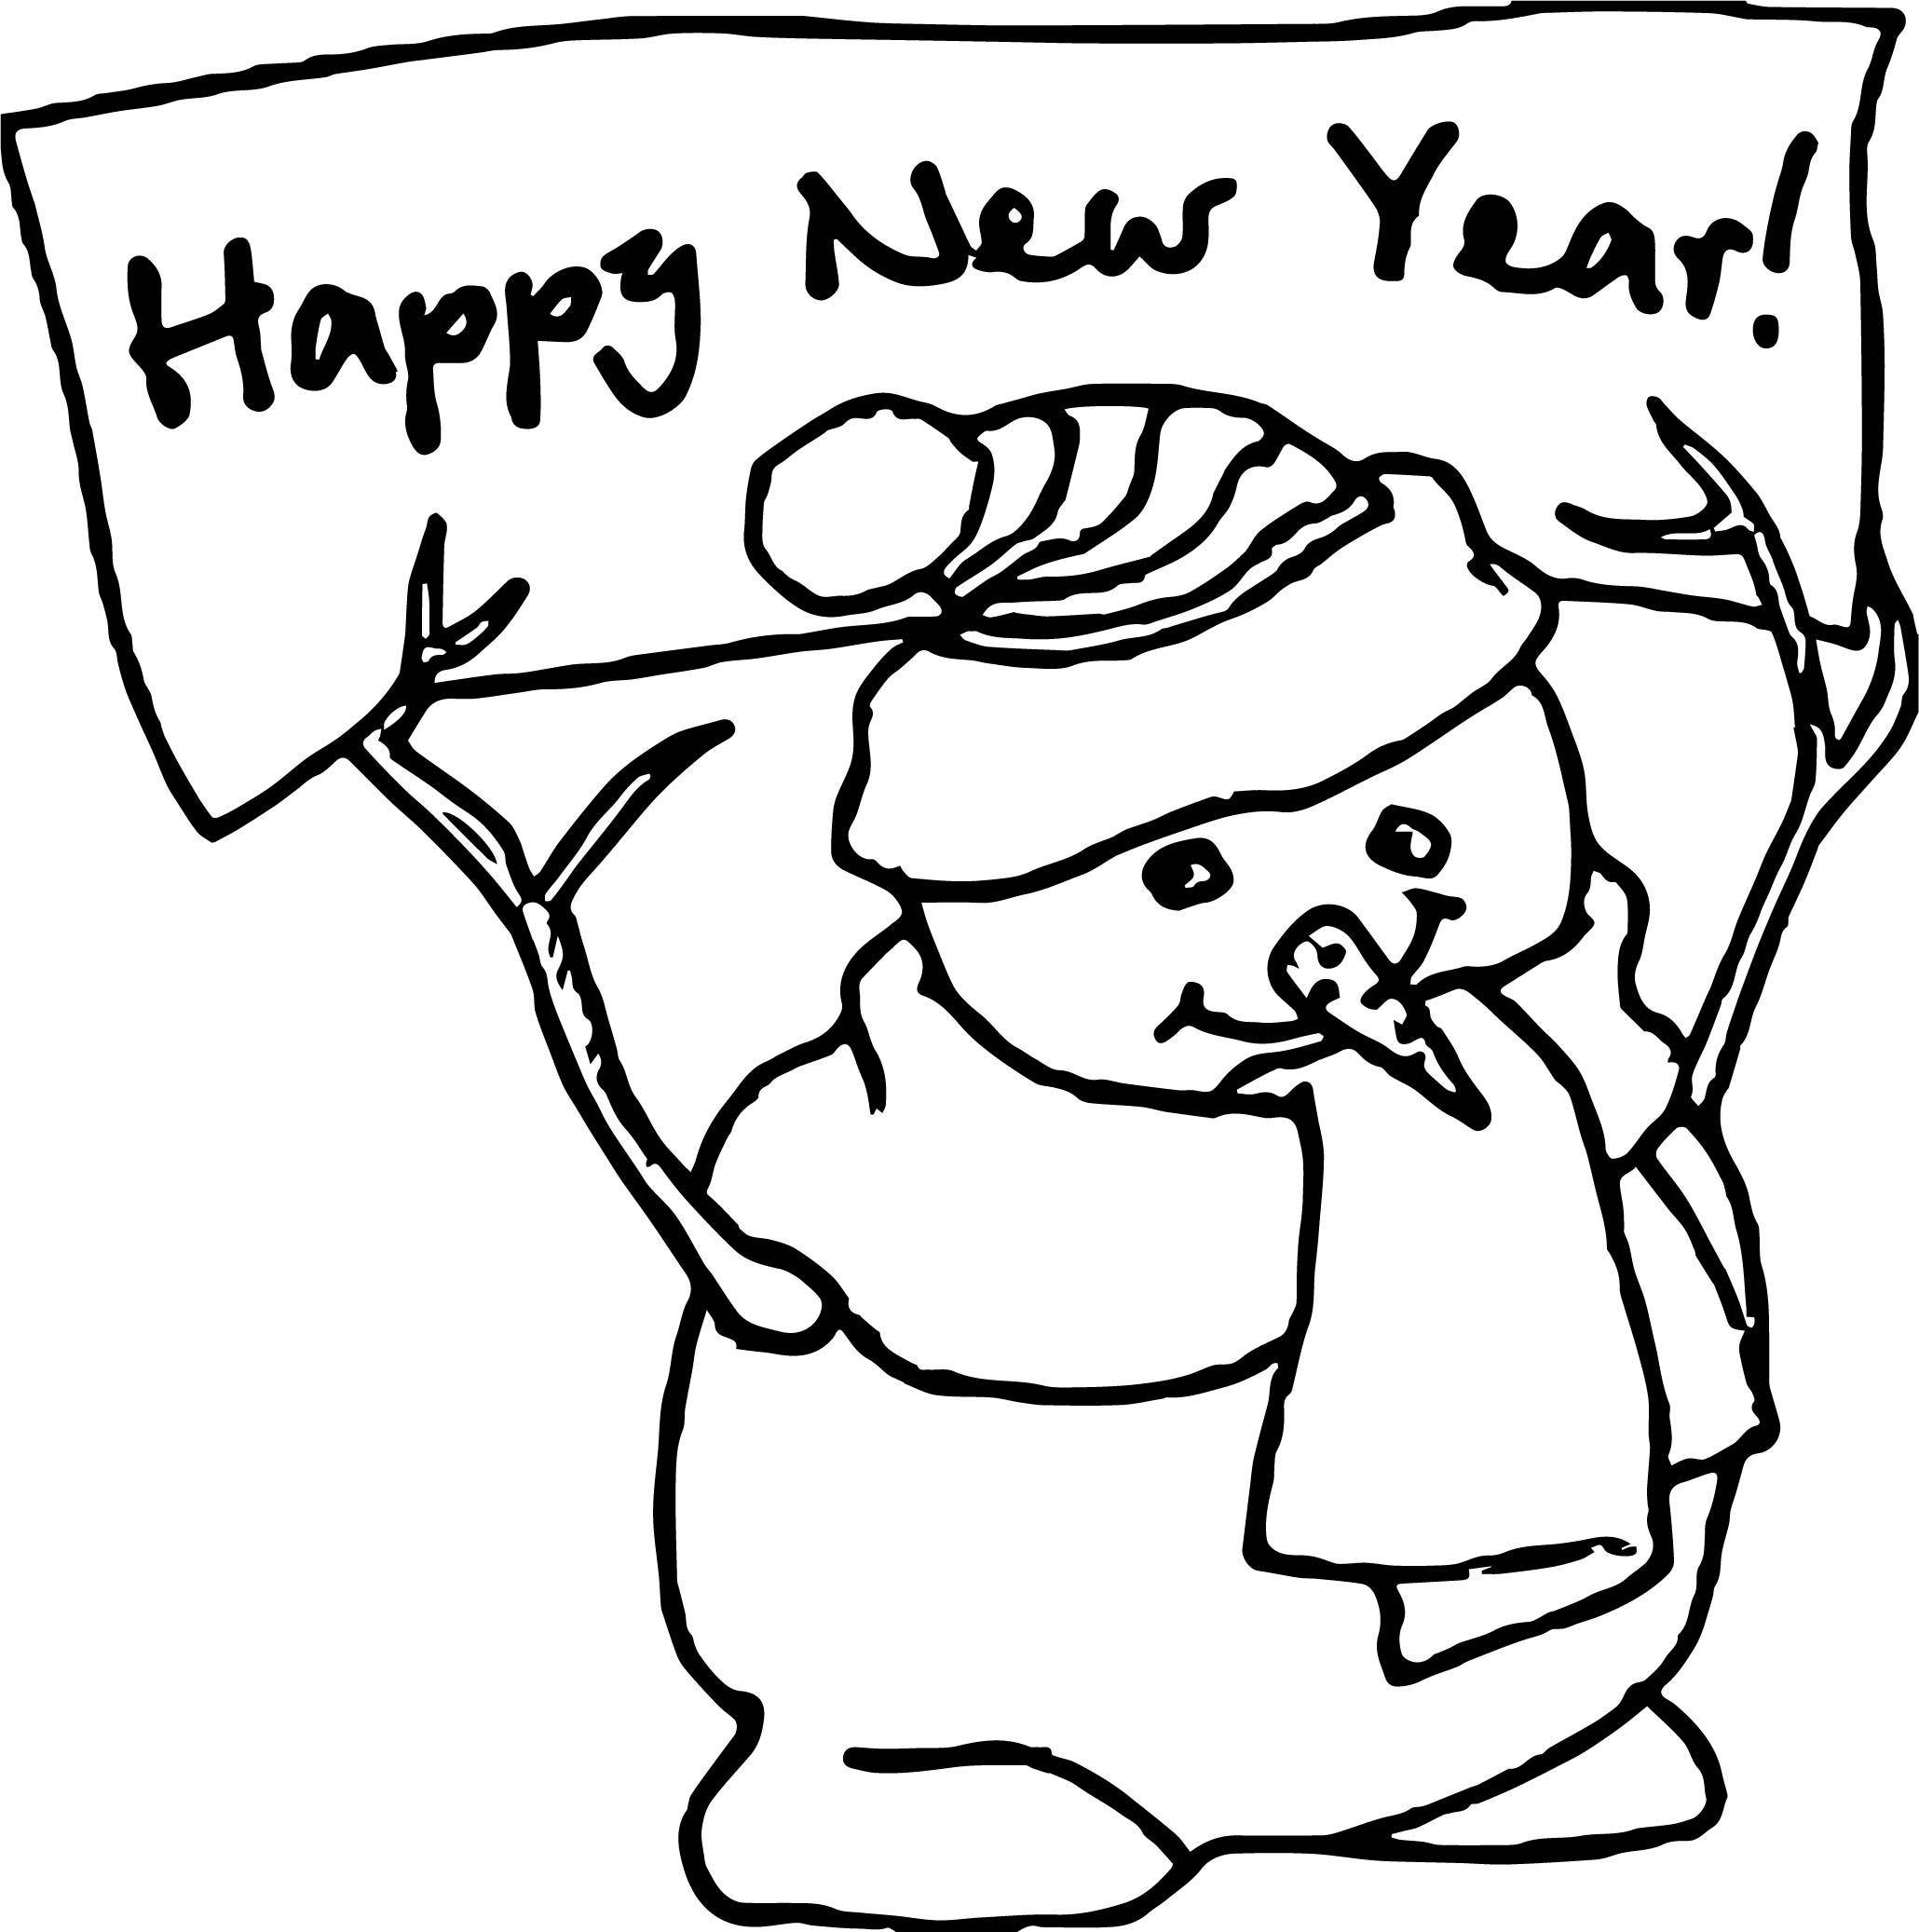 Any Happy New Year Snowman Coloring Page | Wecoloringpage